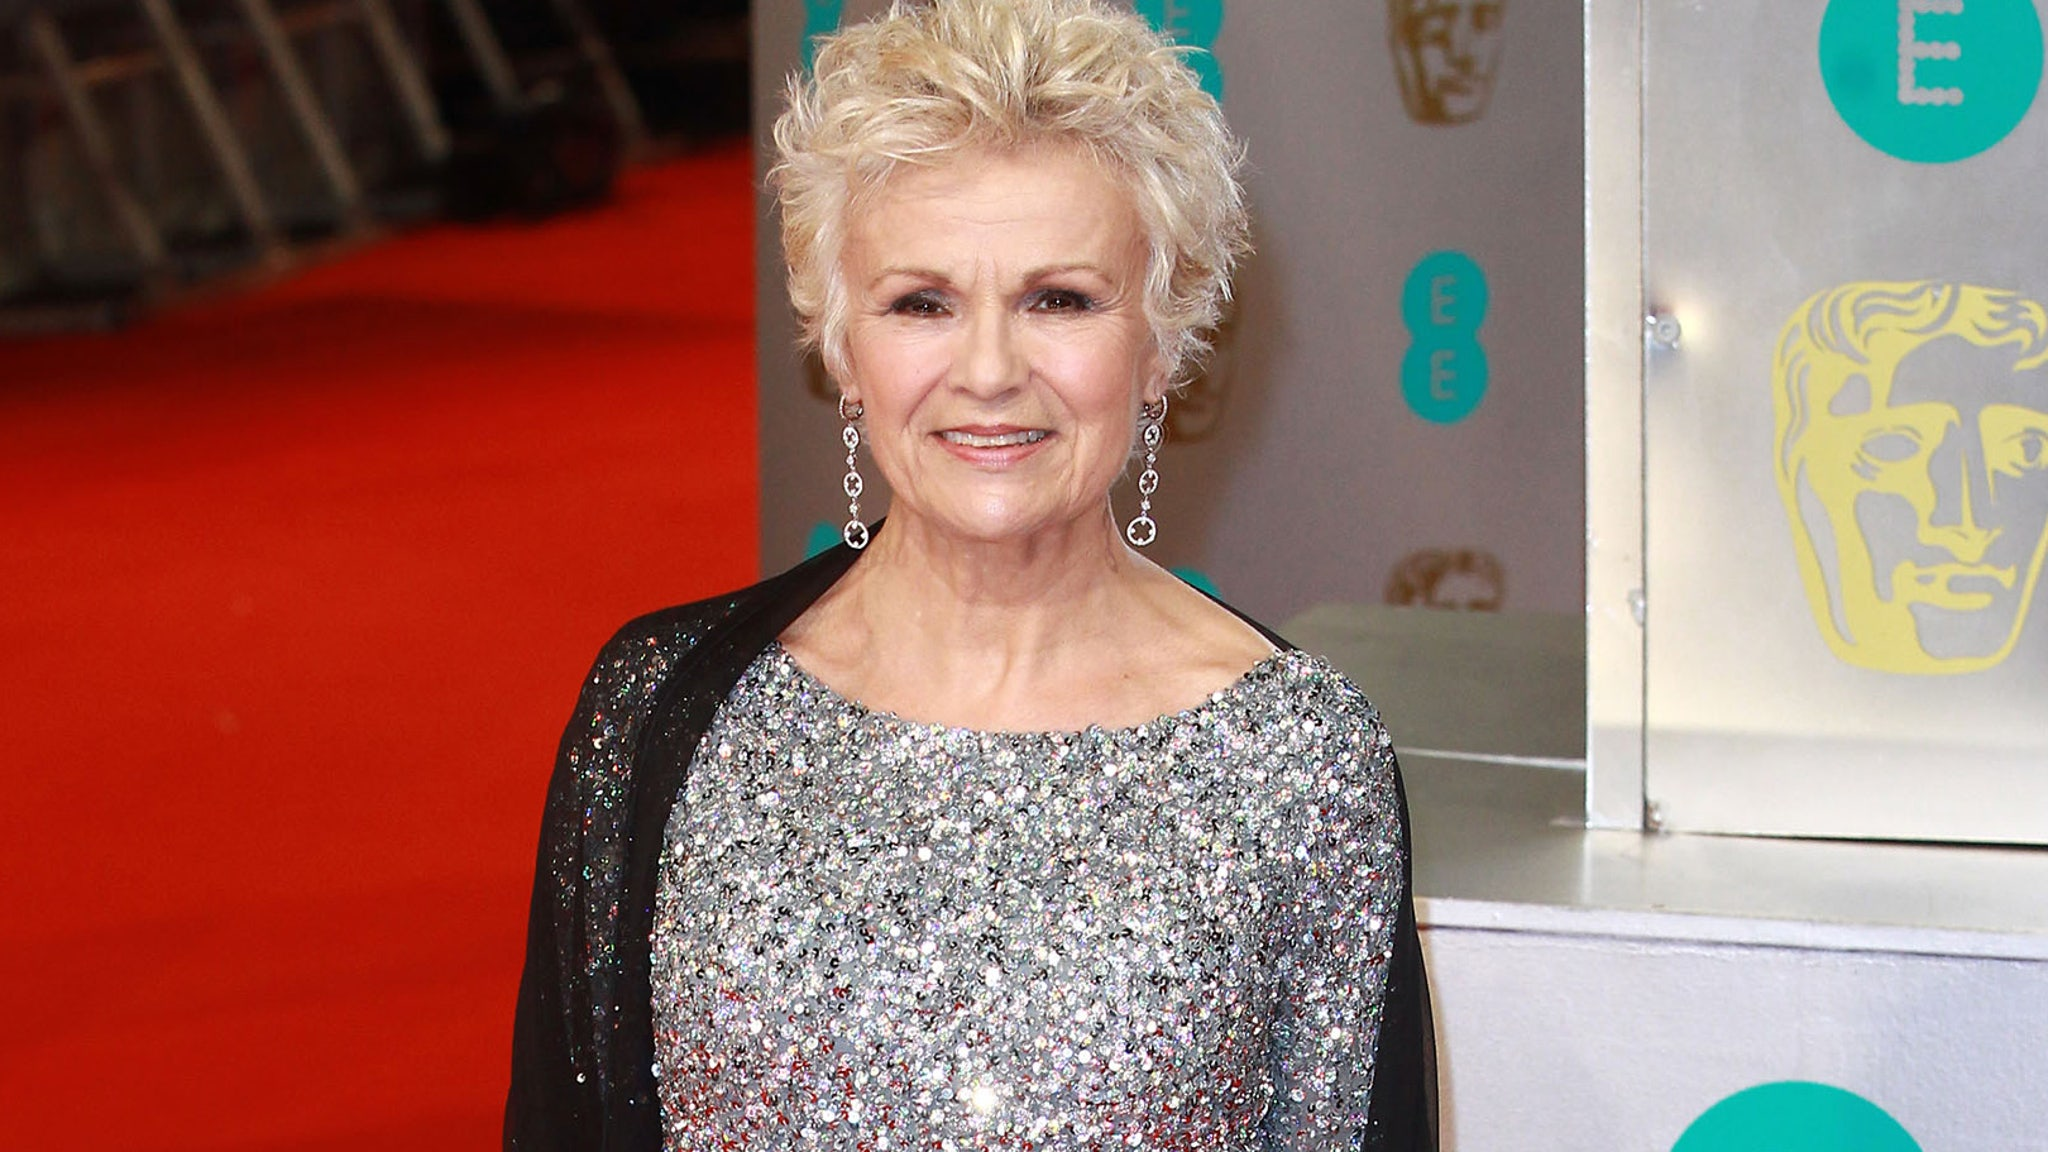 Julie Walters Reveals Battle With Stage 3 Bowel Cancer